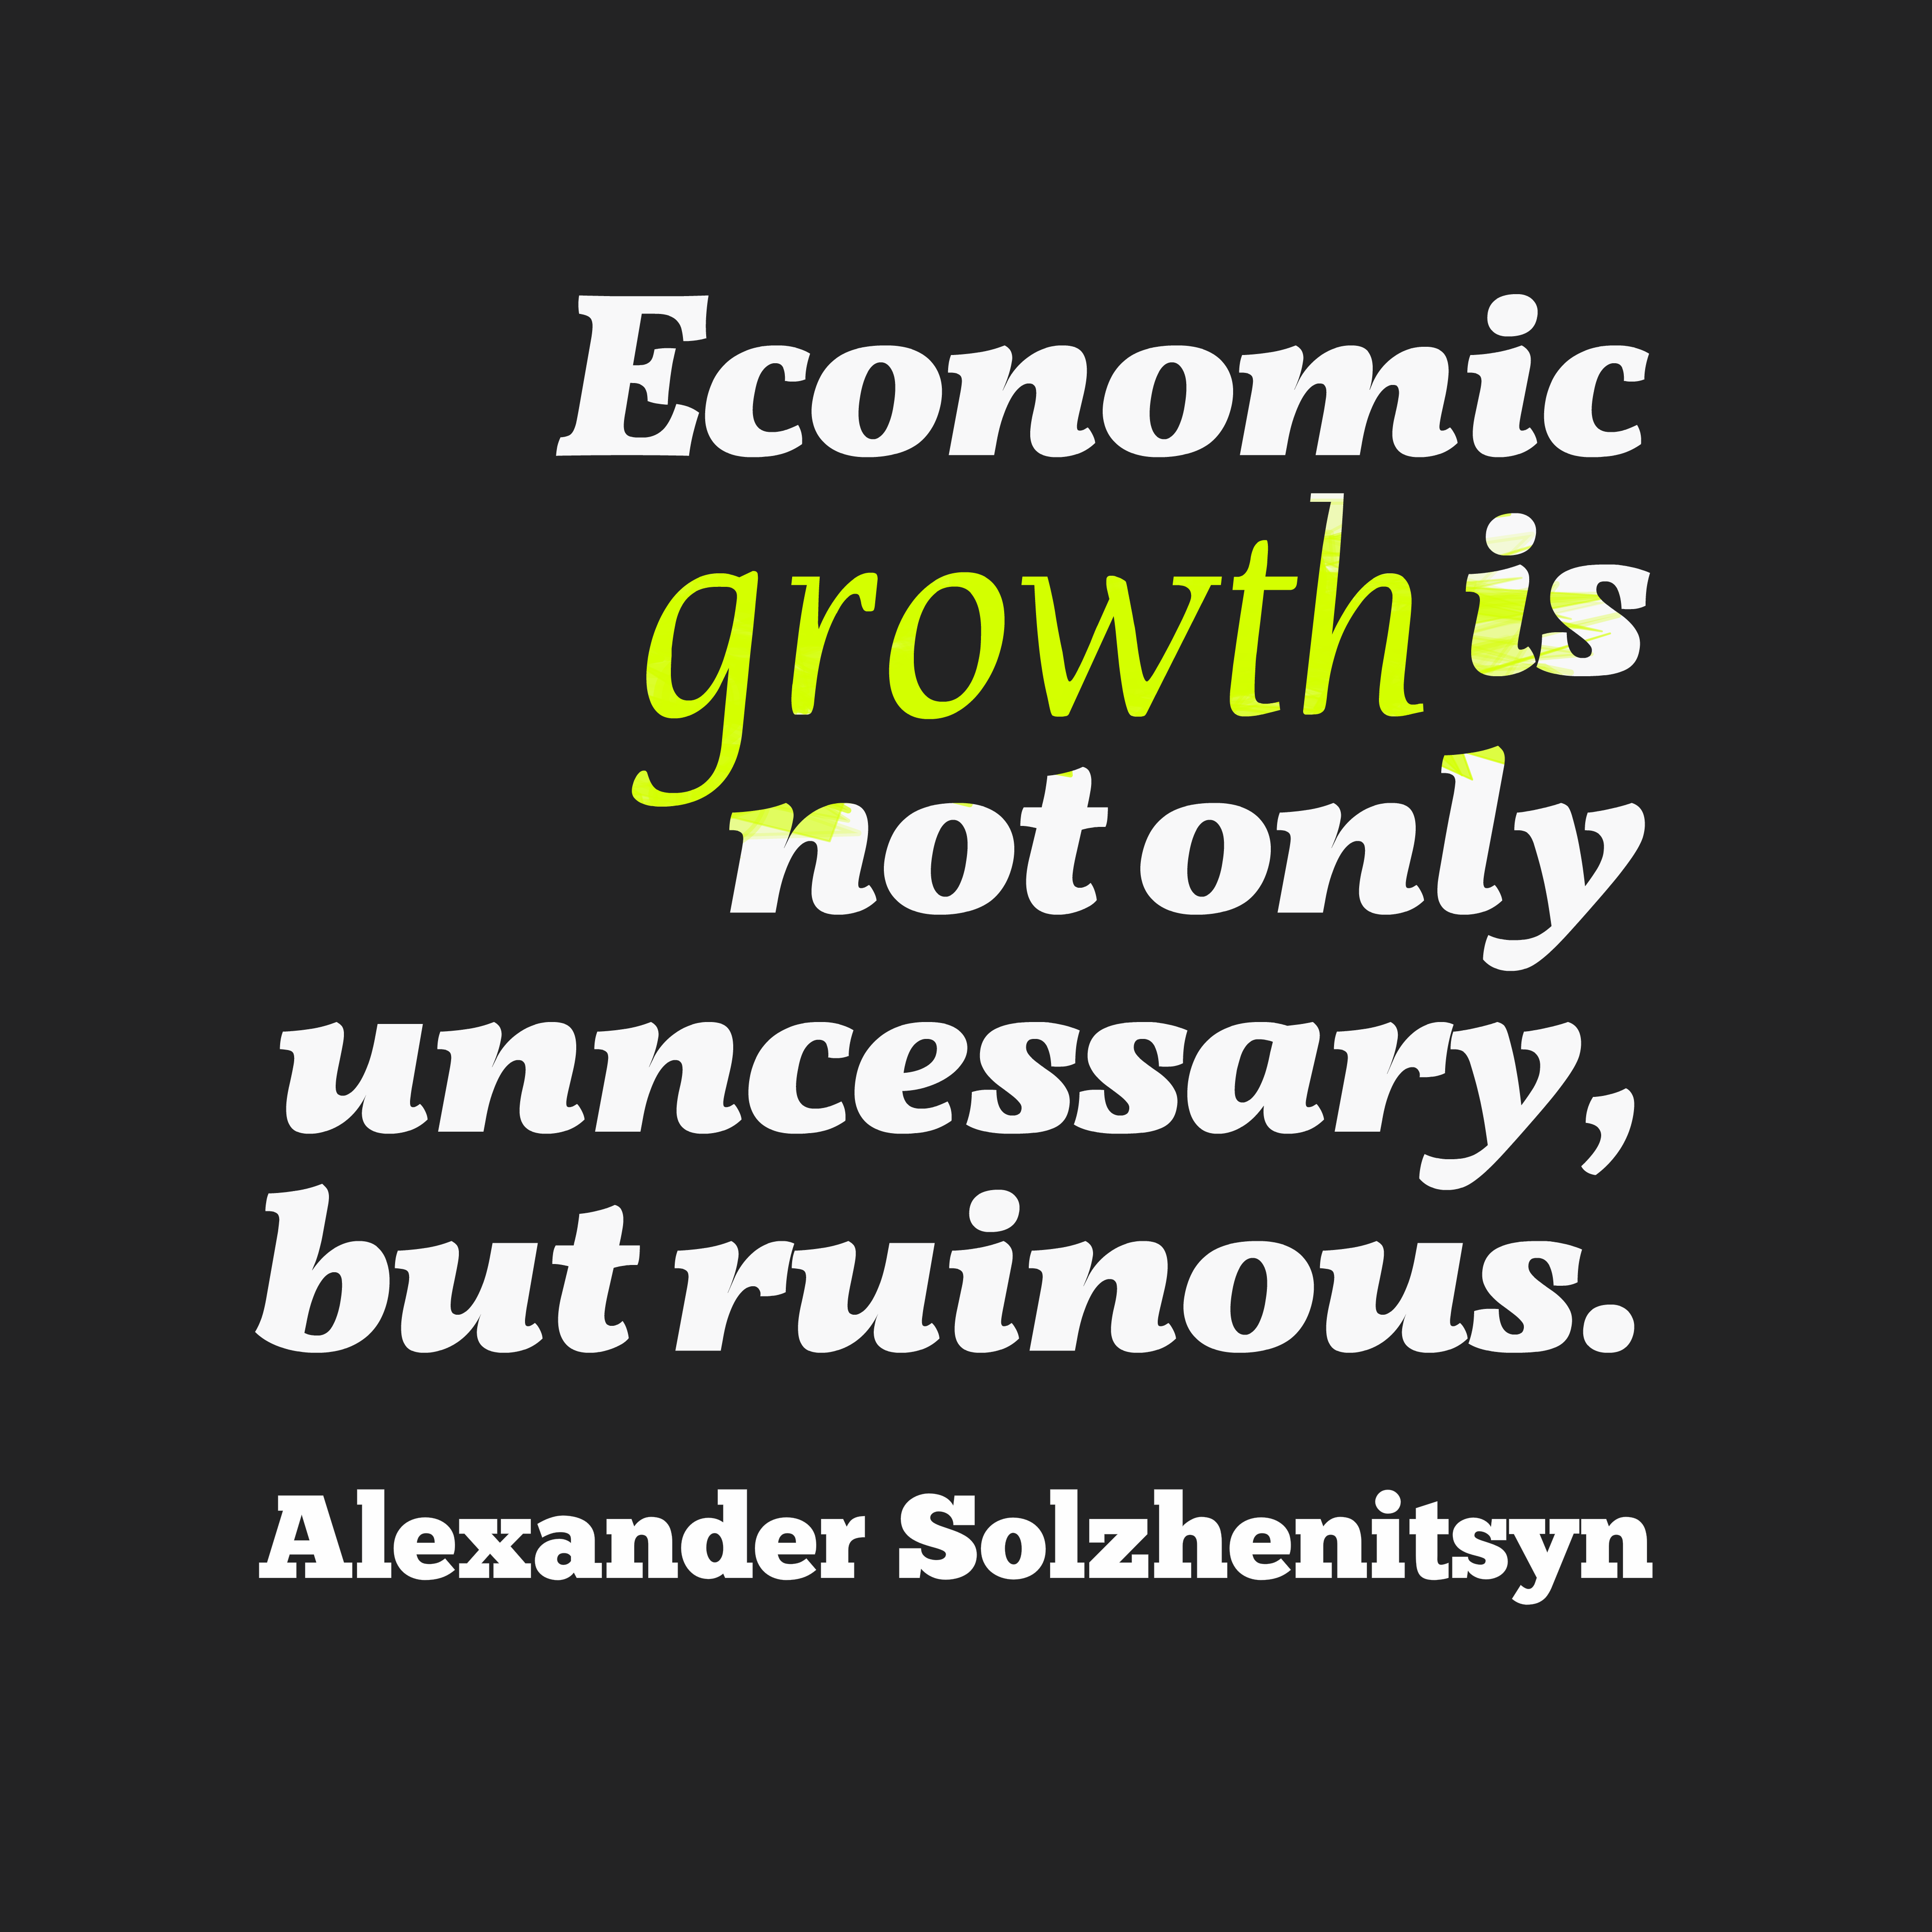 Quotes image of Economic growth is not only unncessary, but ruinous.